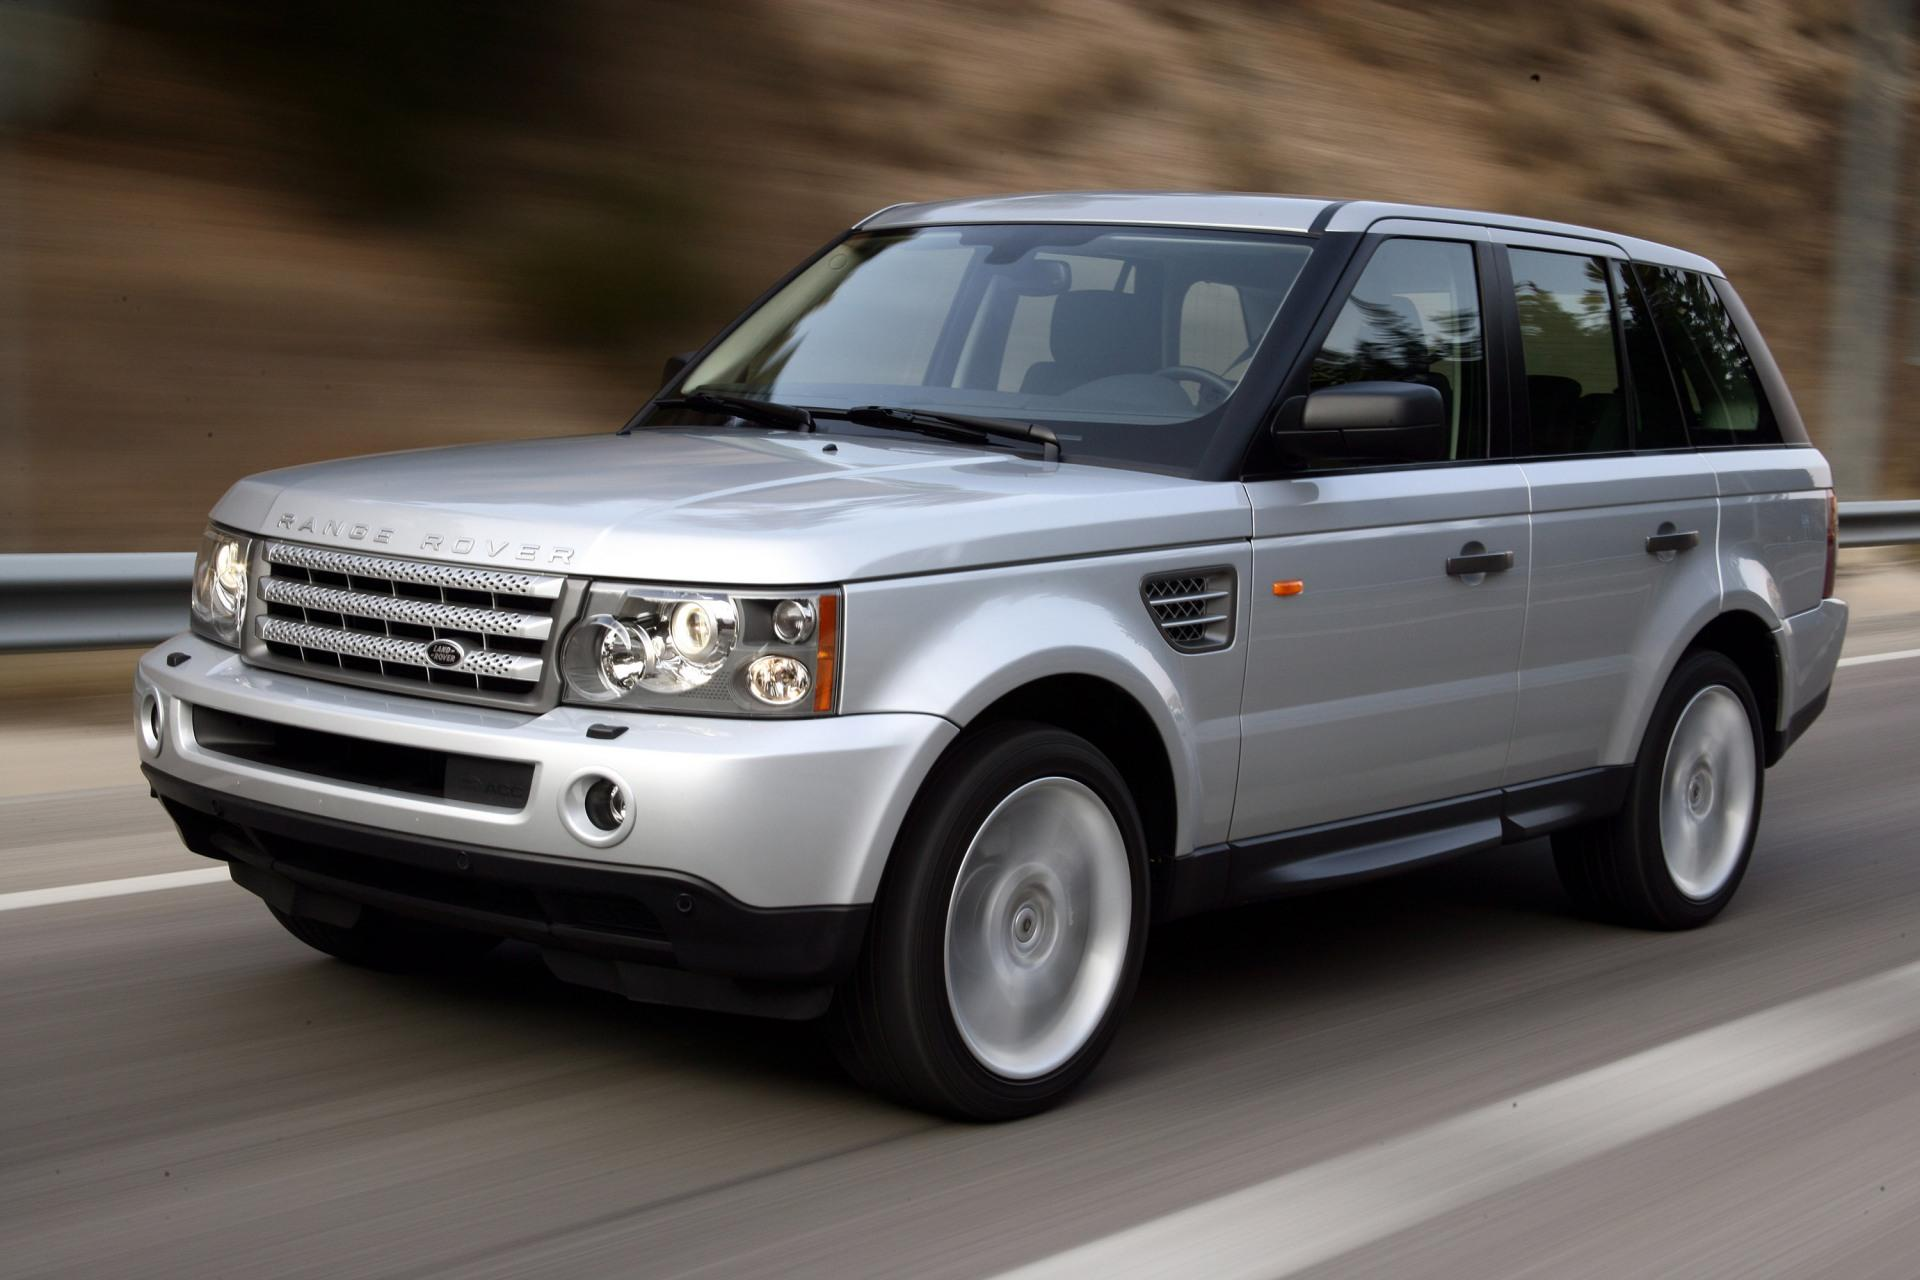 2009 land rover range rover sport news and information. Black Bedroom Furniture Sets. Home Design Ideas